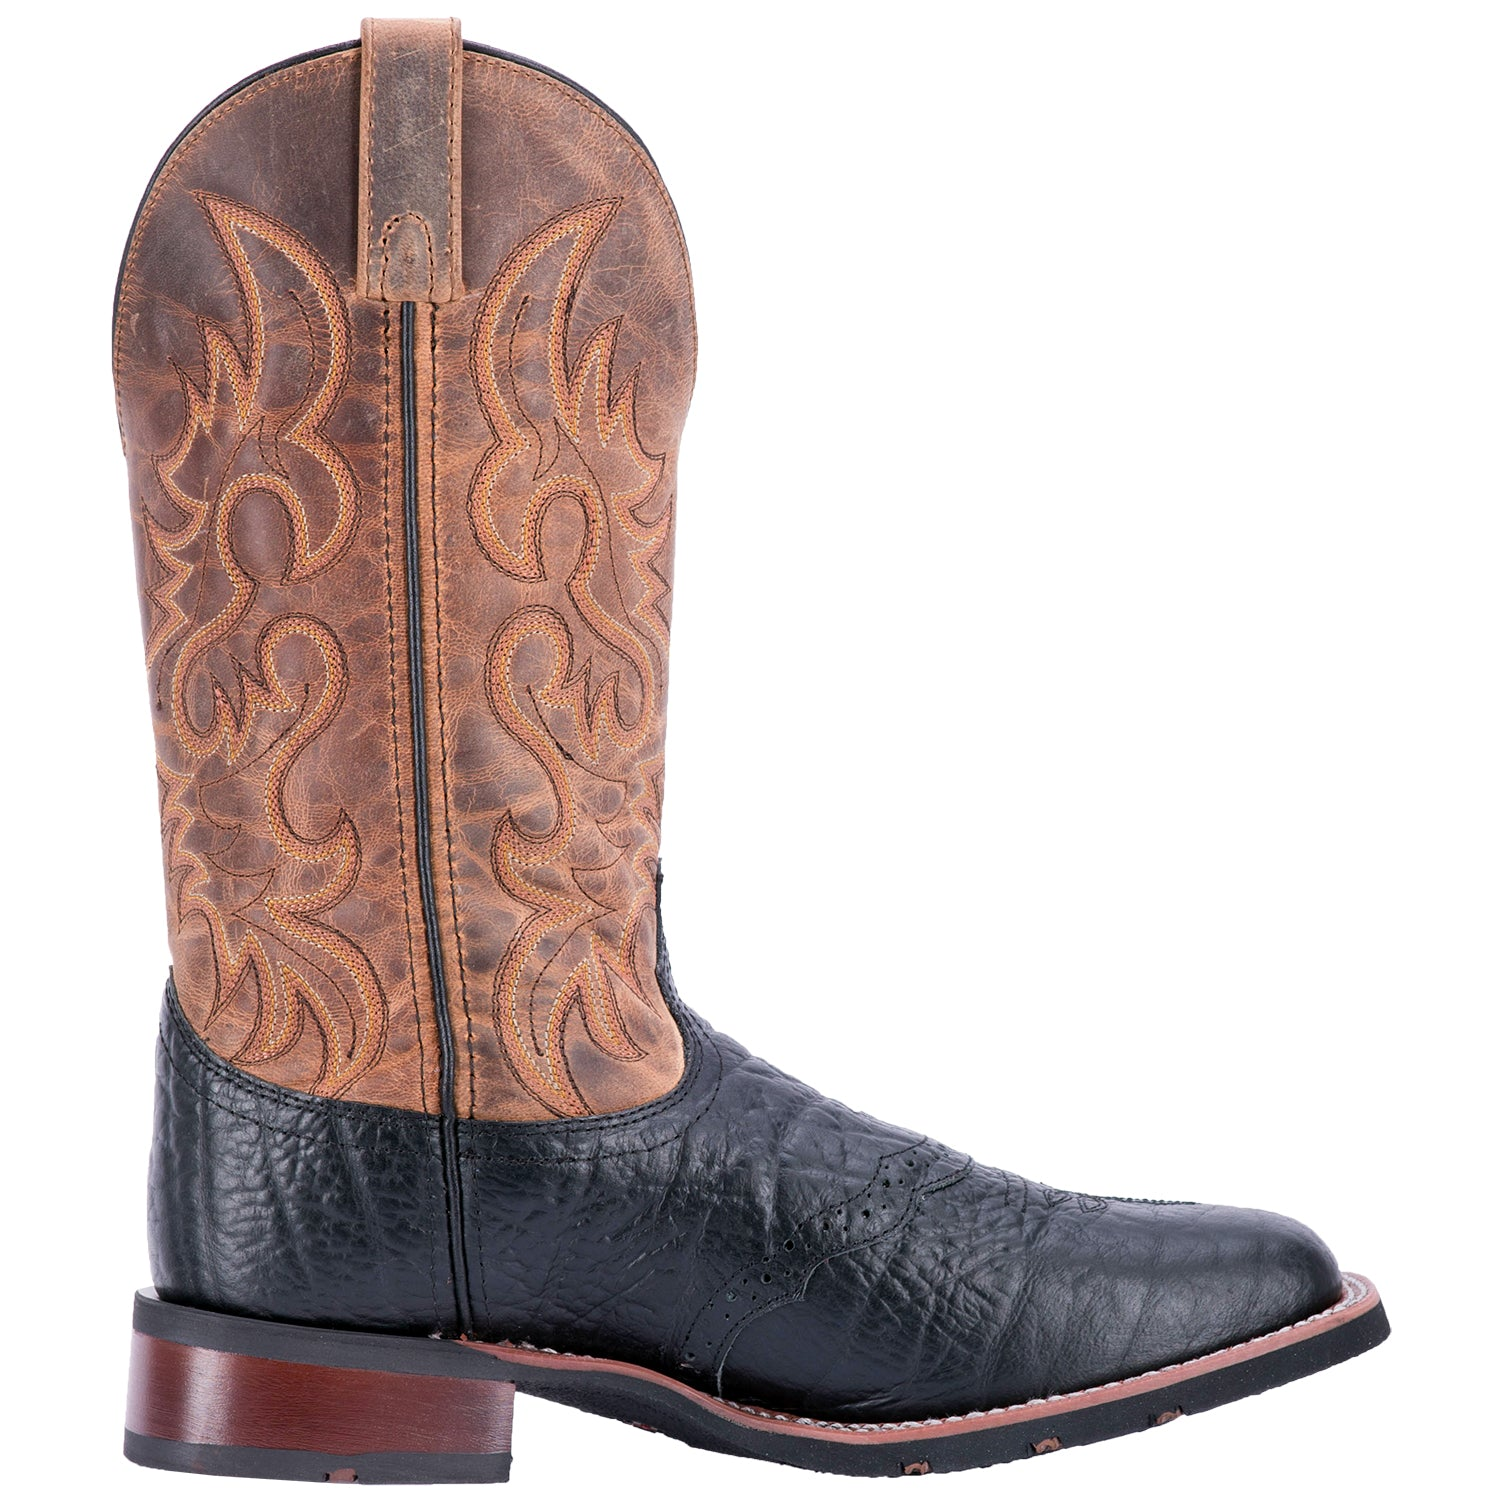 TOPEKA LEATHER BOOT 4197239652394